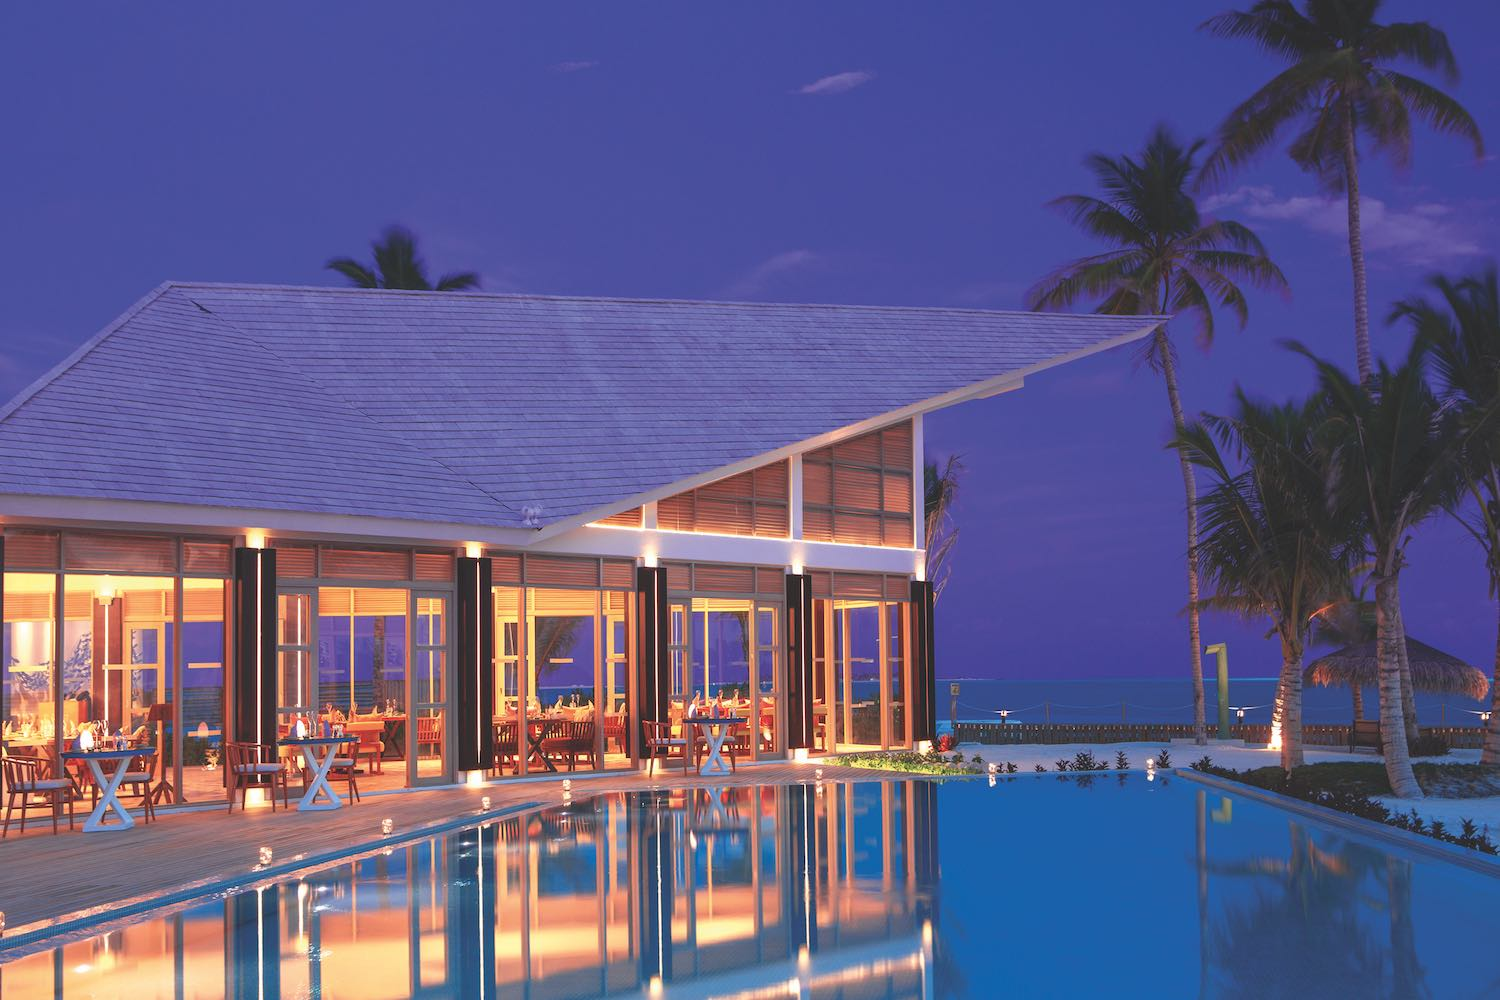 maldives-oblu-select-at-sangeli-adults-only-poolside-and-restaurant-2-holiday-honeymoon-vacation-invite-to-paradise.jpg